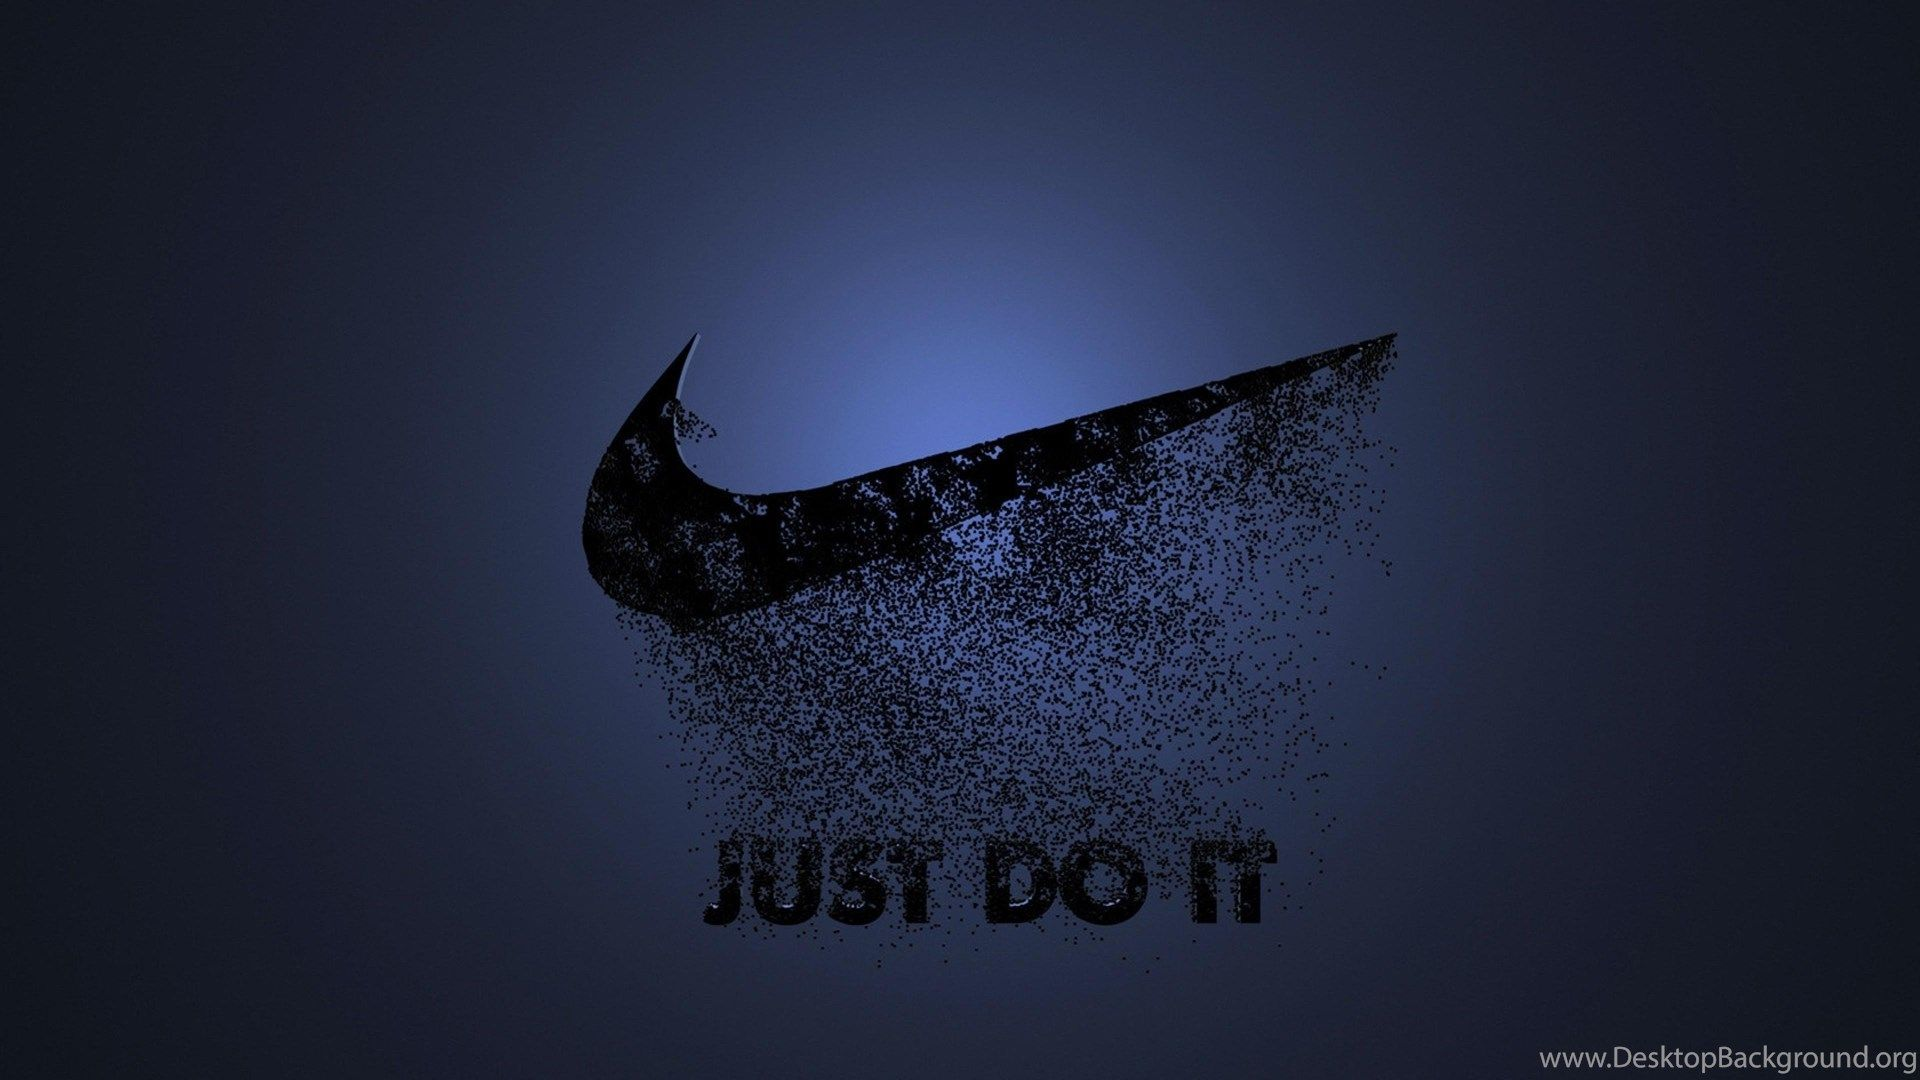 1920x1080 Nike Motivational Wallpapers HD Desktop Background